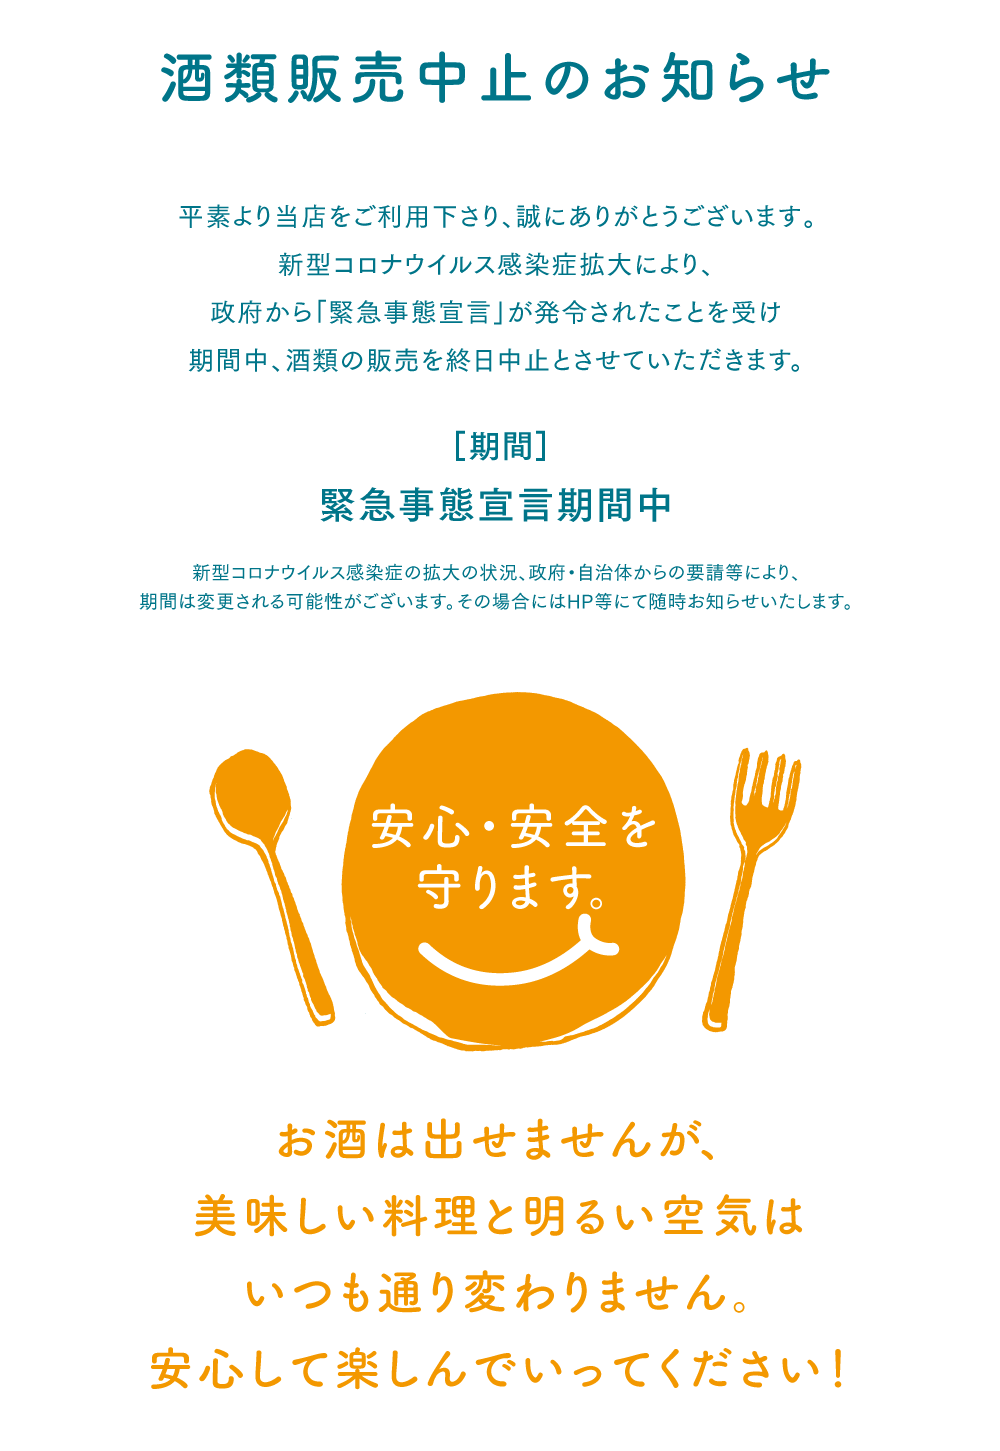 info_20210424.png